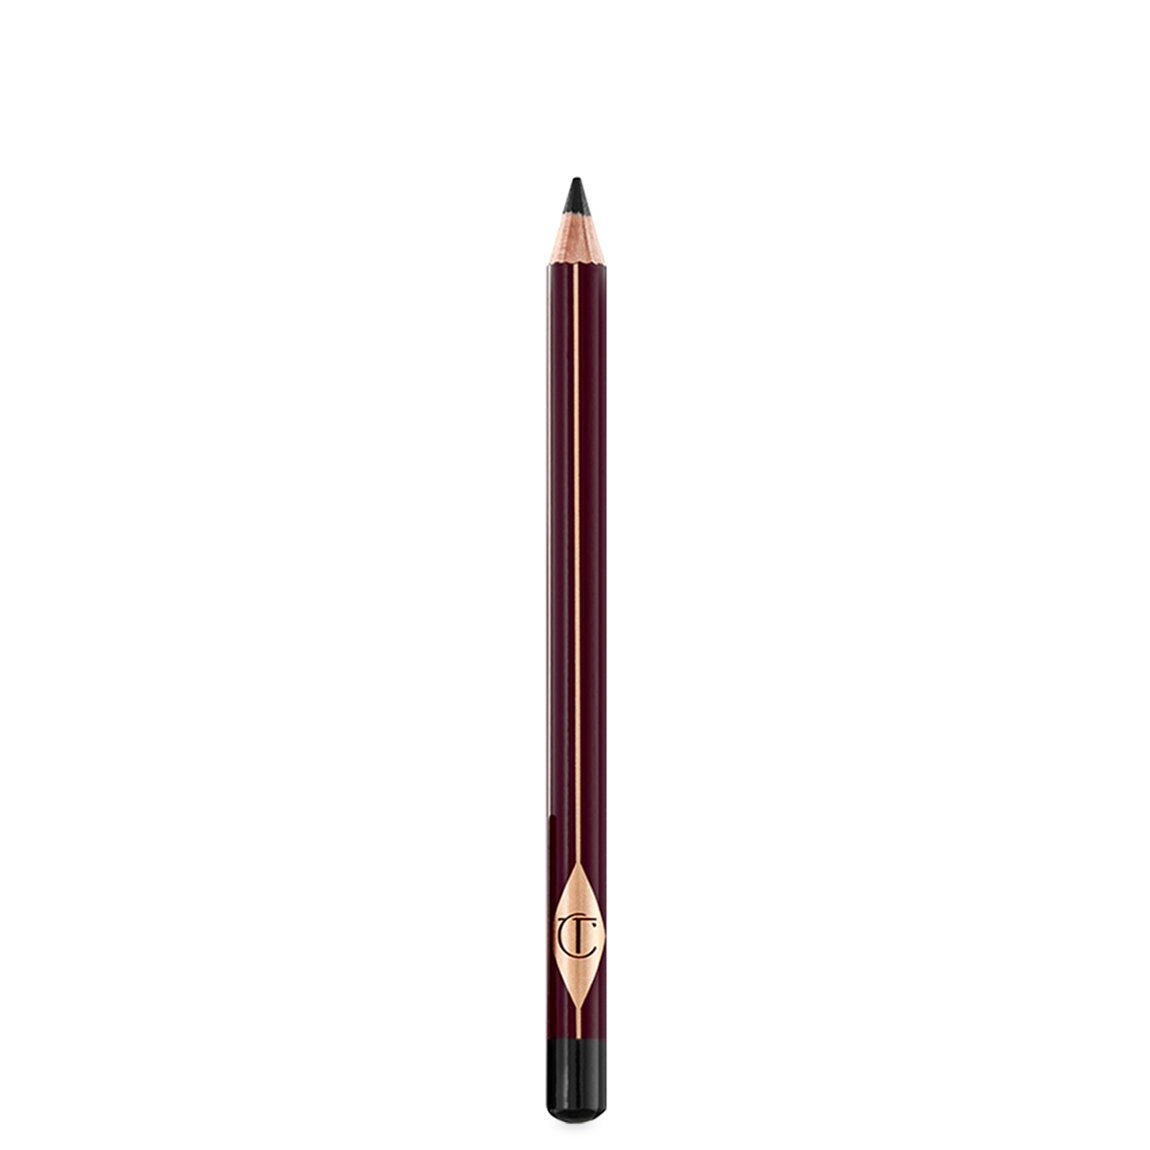 Charlotte Tilbury The Classic Black alternative view 1.